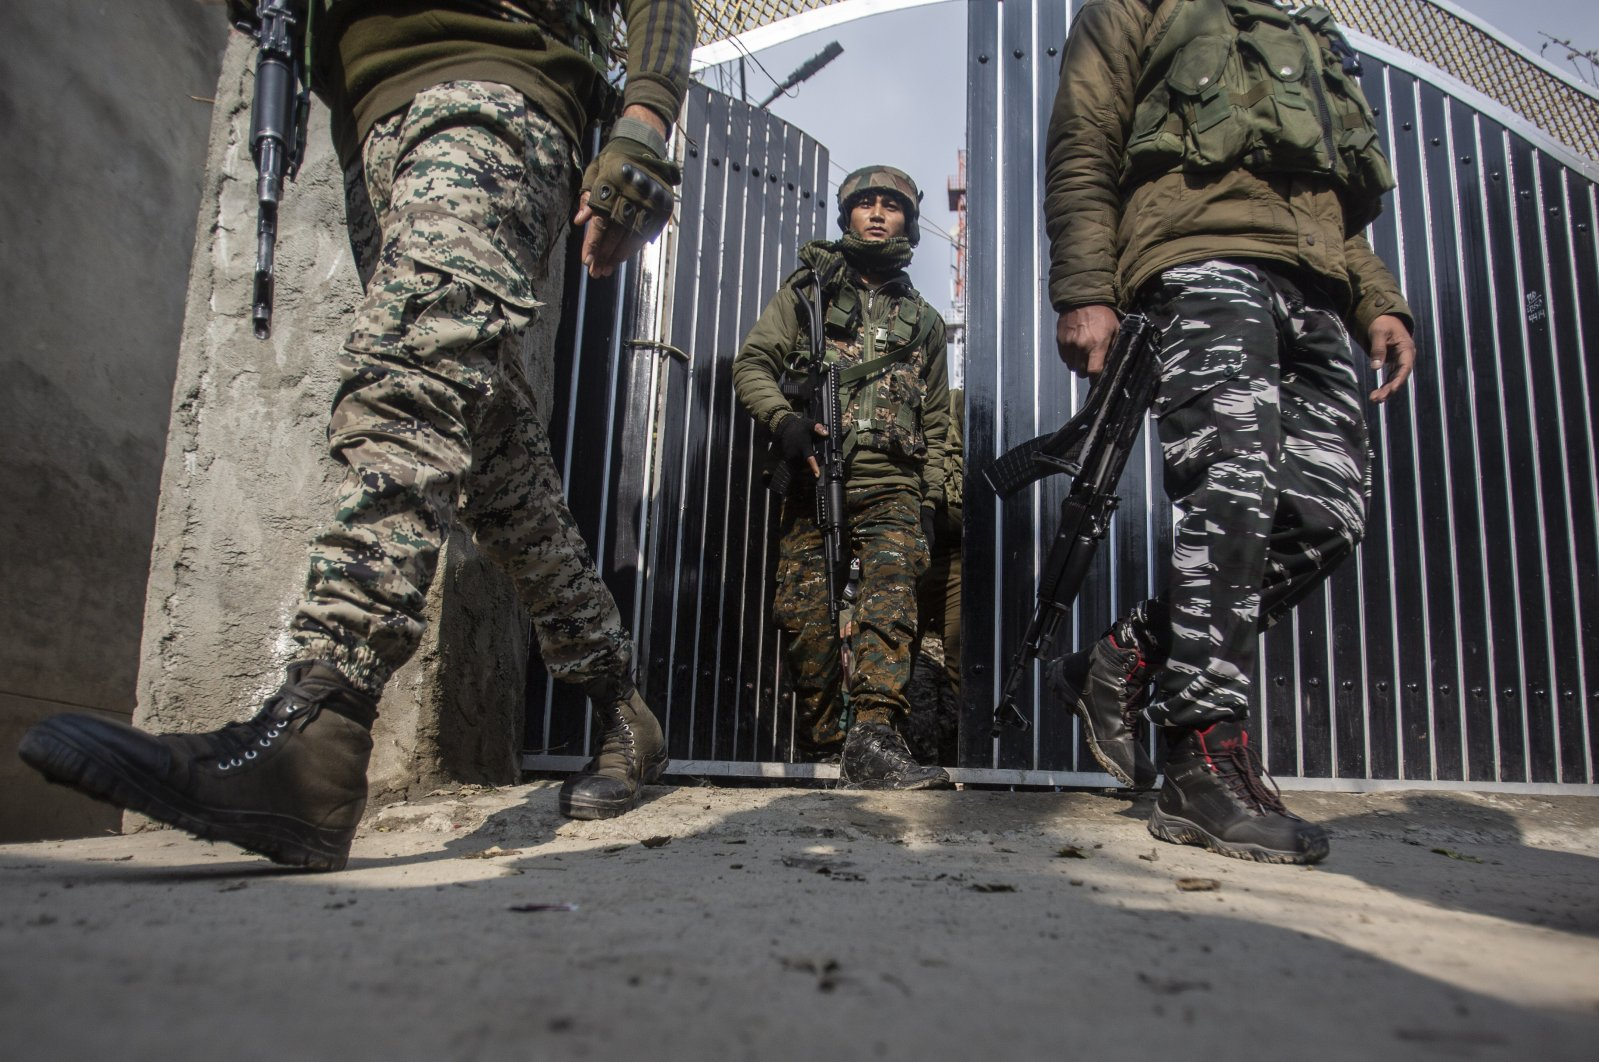 Indian soldiers come out of the house of a leader of the People's Democratic Party where a personal security officer was killed in a rebel attack in Srinagar, Kashmir, Dec. 14, 2020. (AP Photo)